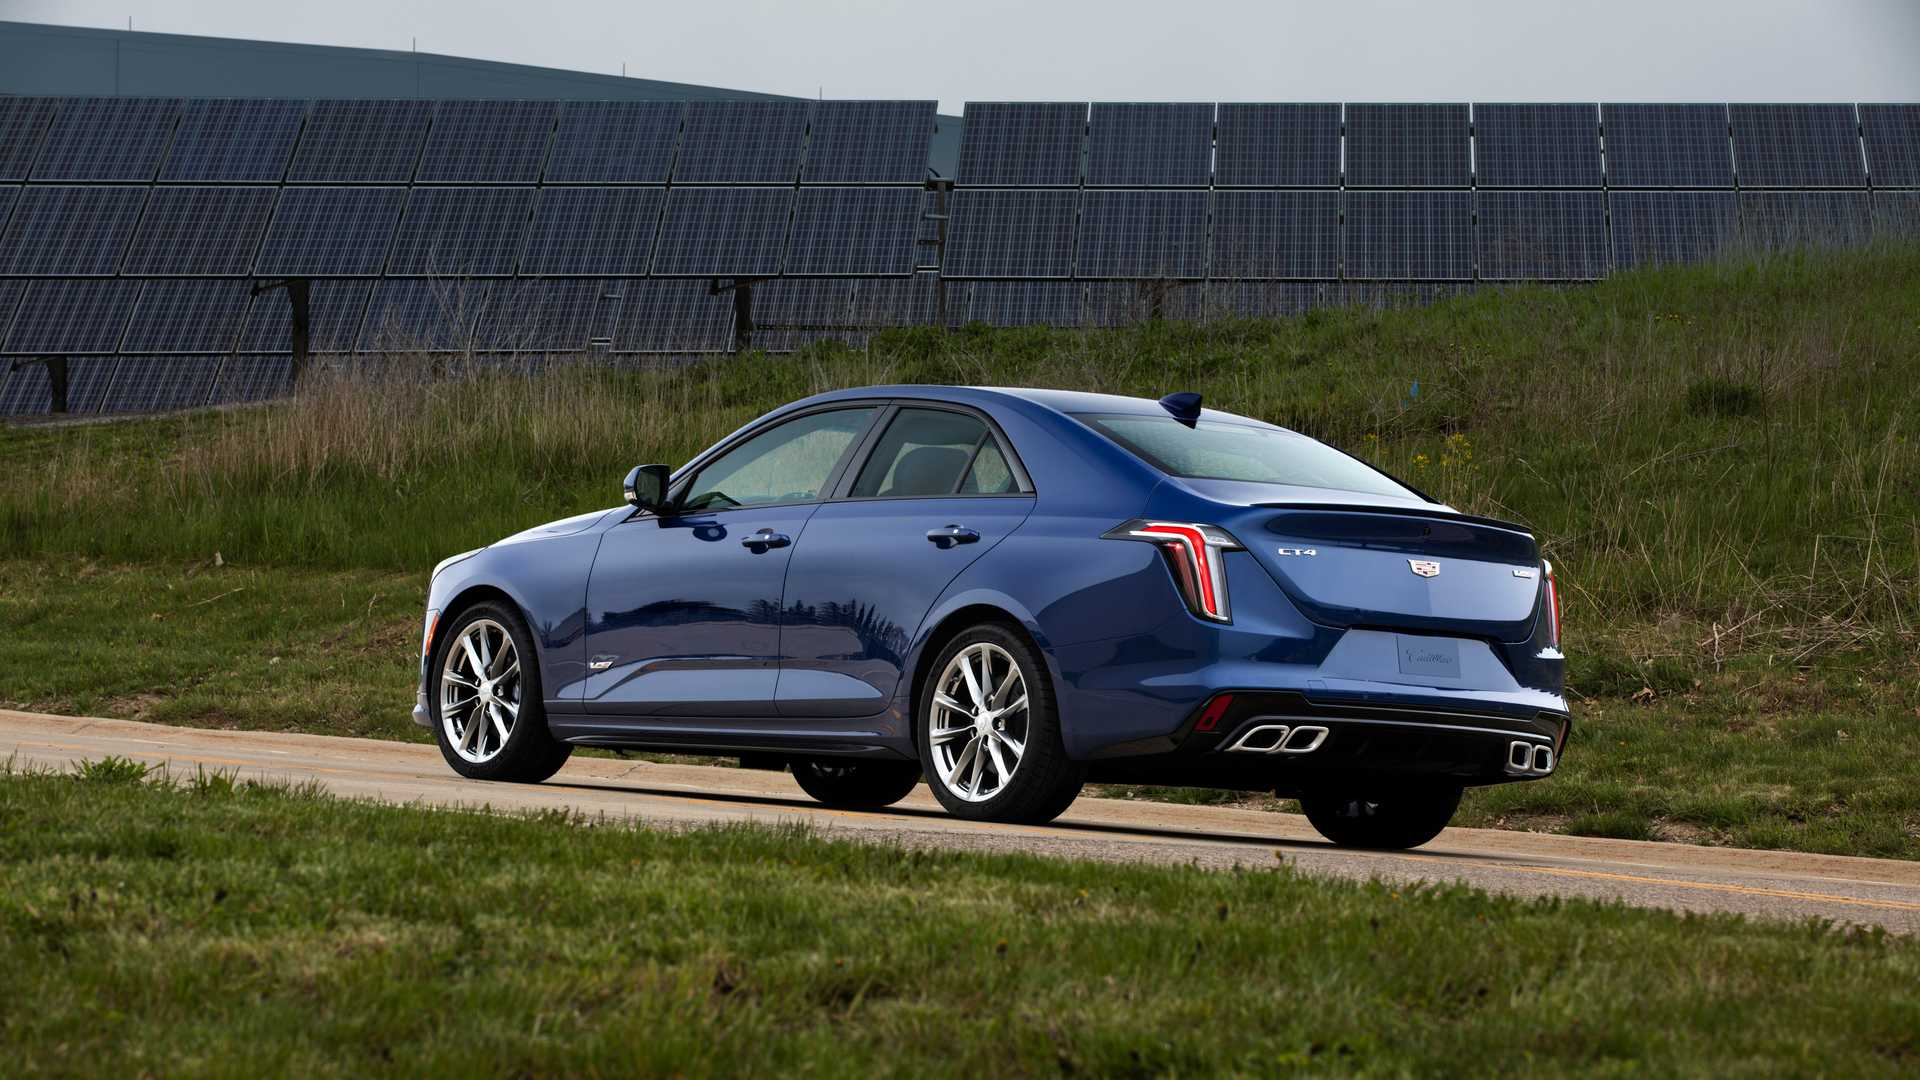 80 Gallery of Cadillac Ct4 2020 Pricing for Cadillac Ct4 2020